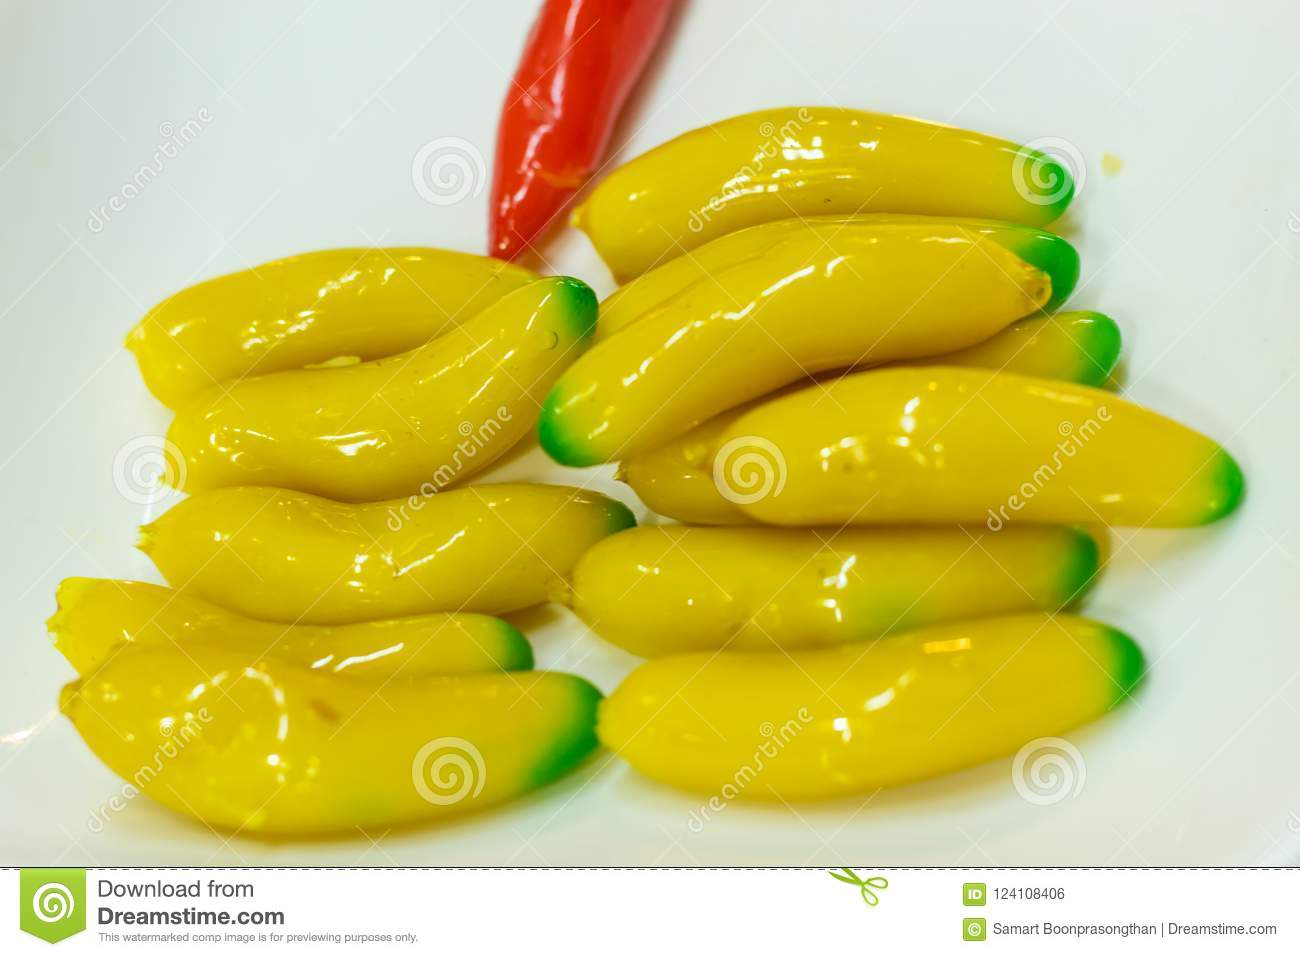 Fruit desserts Thailand Made of soy Then coated jelly